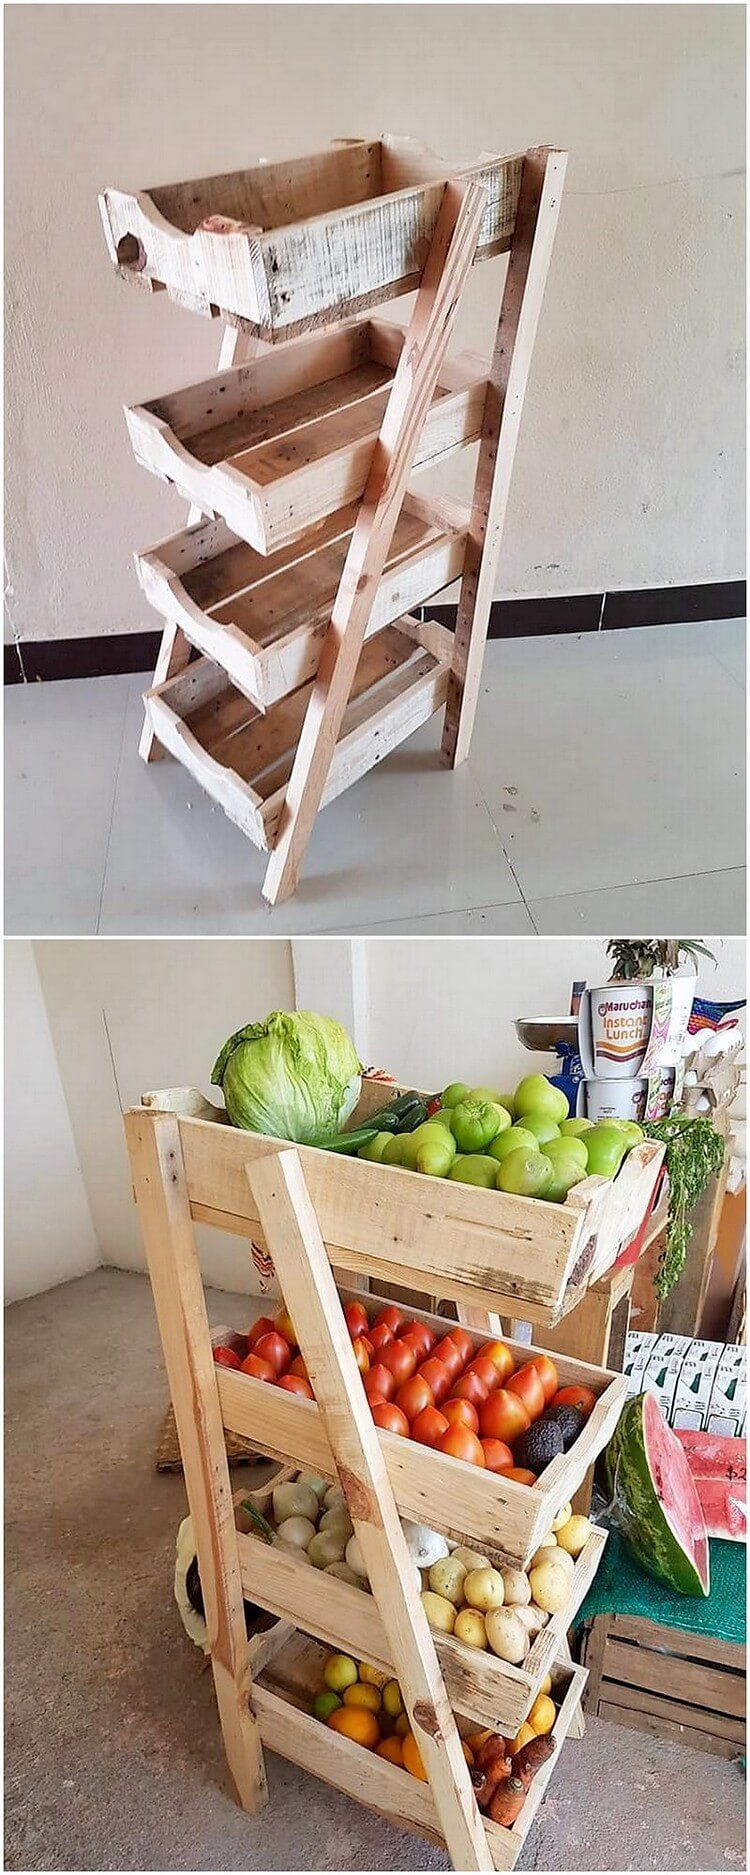 Styling The Kitchen Location With The Vegetable And Fruit Rack Style Wood Pallet Is Much A Unique Piece Of Idea To Make Wood Pallets Pallet Diy Pallet Kitchen